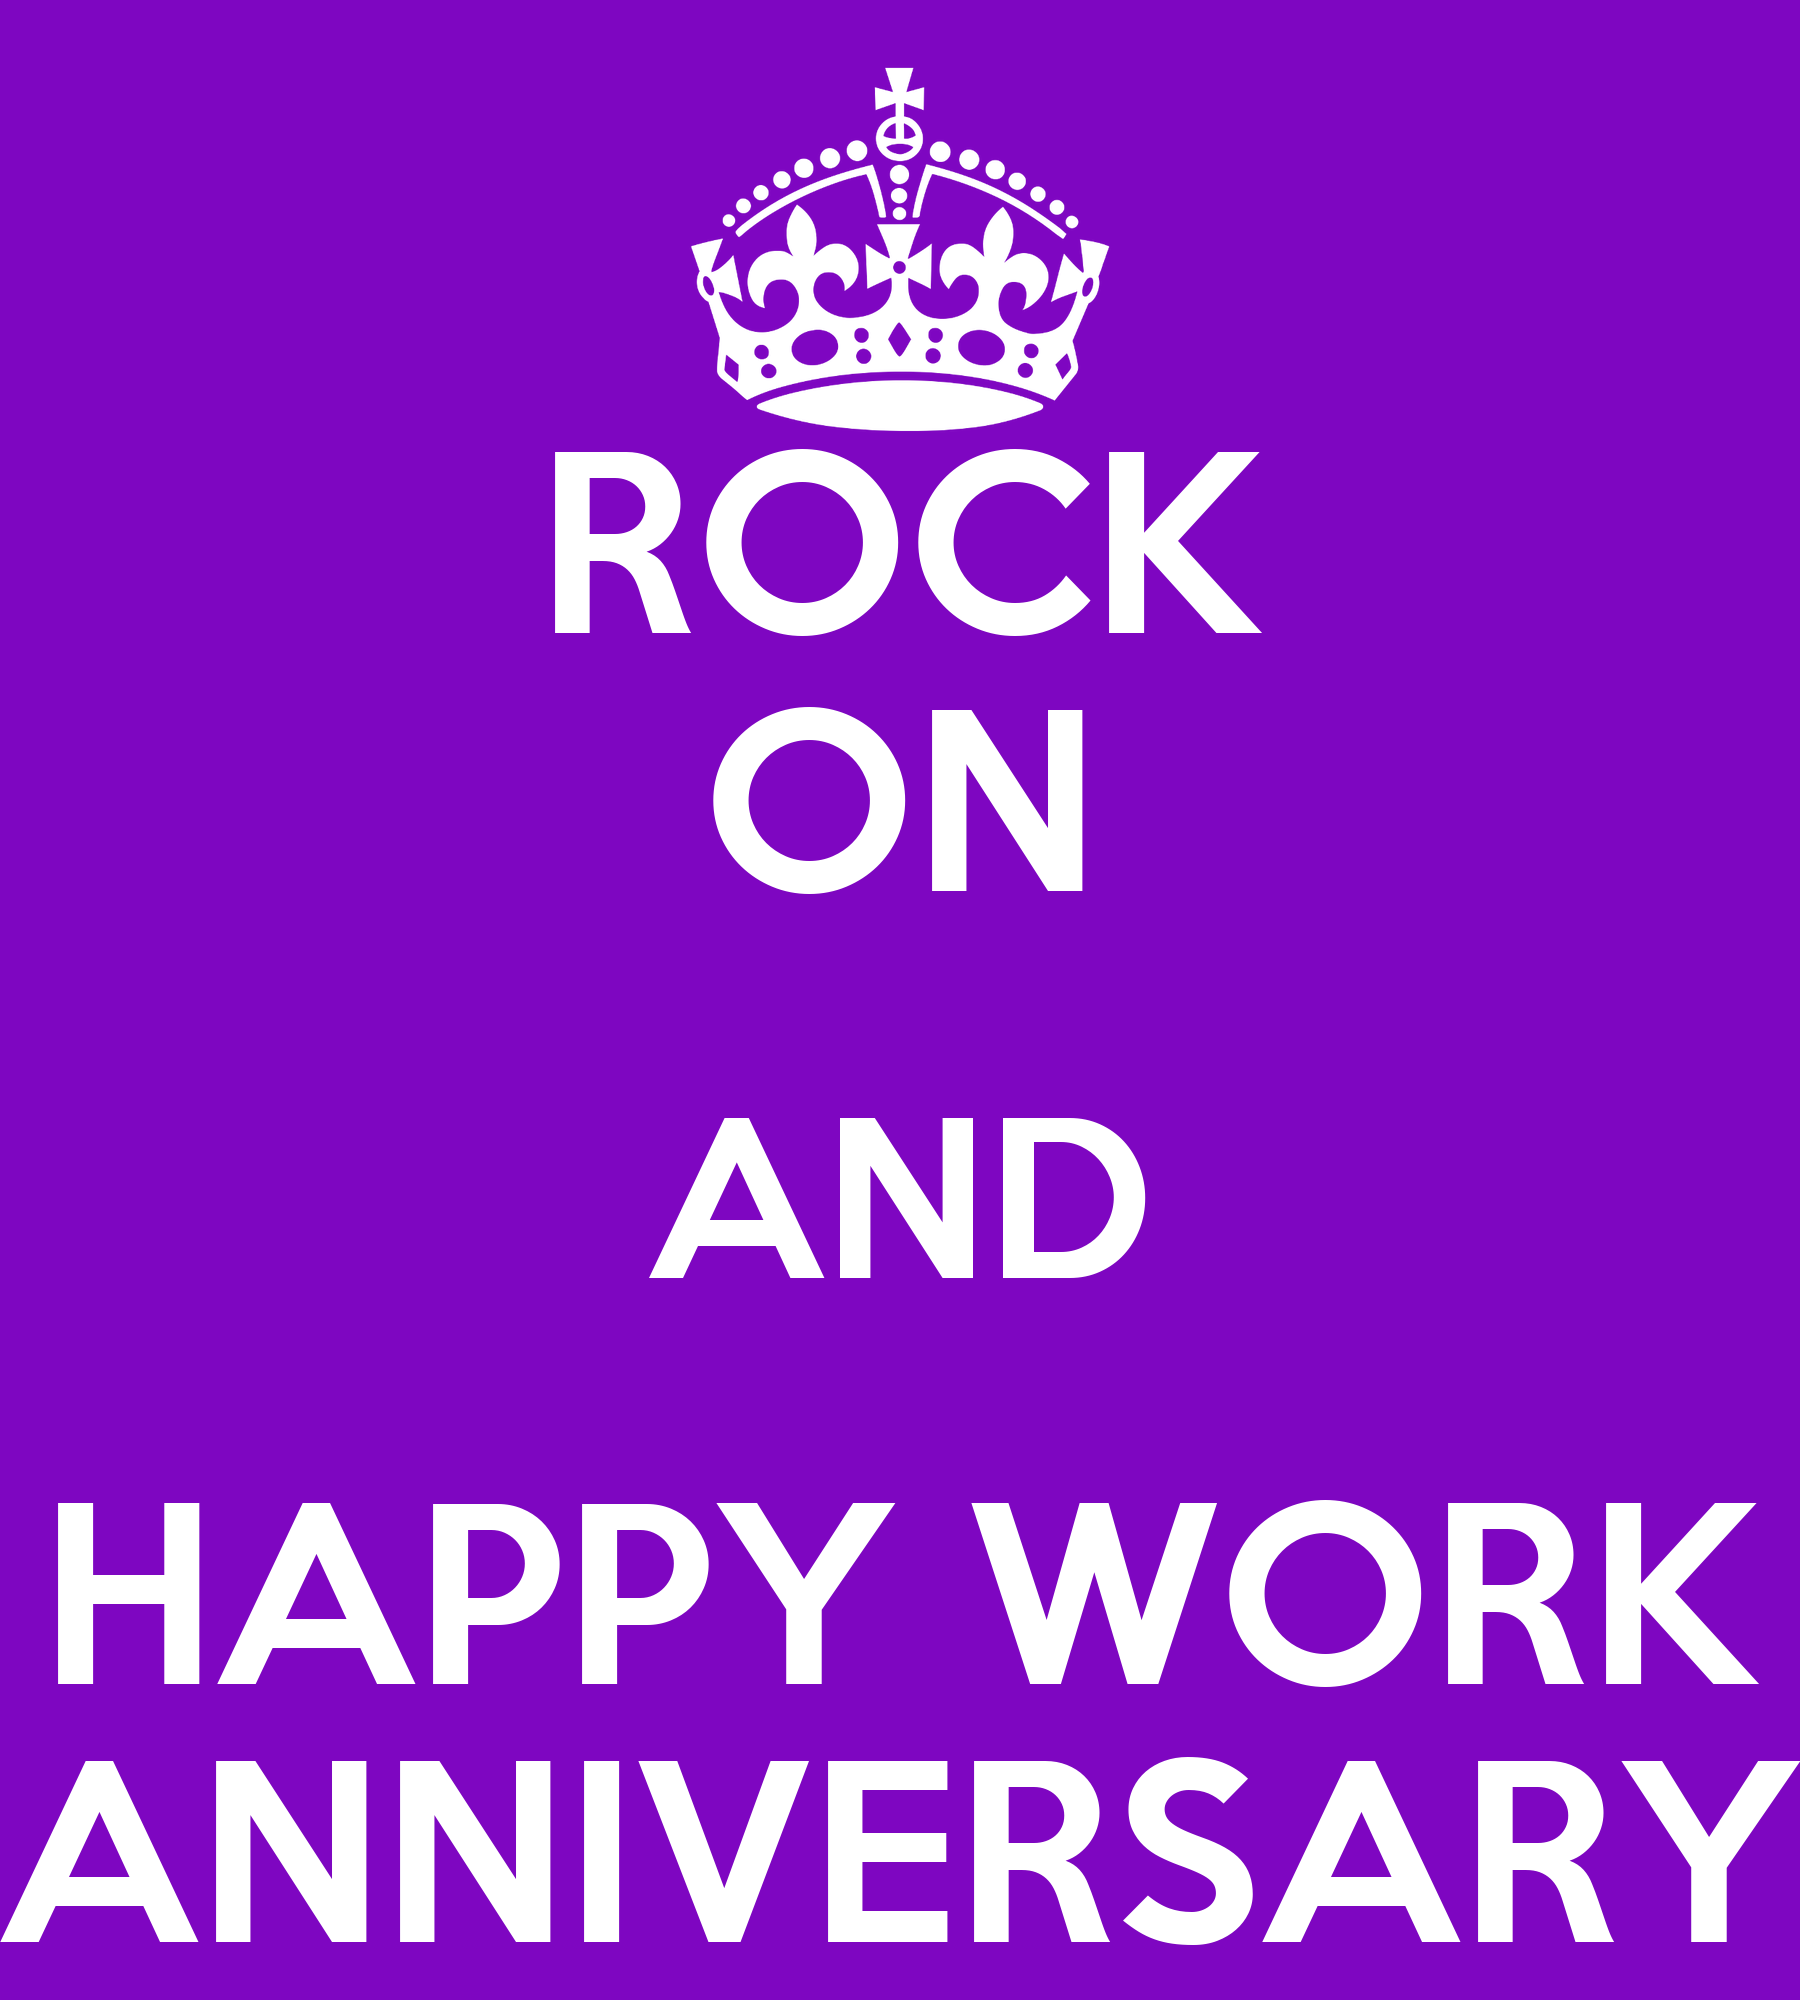 Http Www Keepcalm O Matic Co Uk P Rock On And Happy Work Anniversary